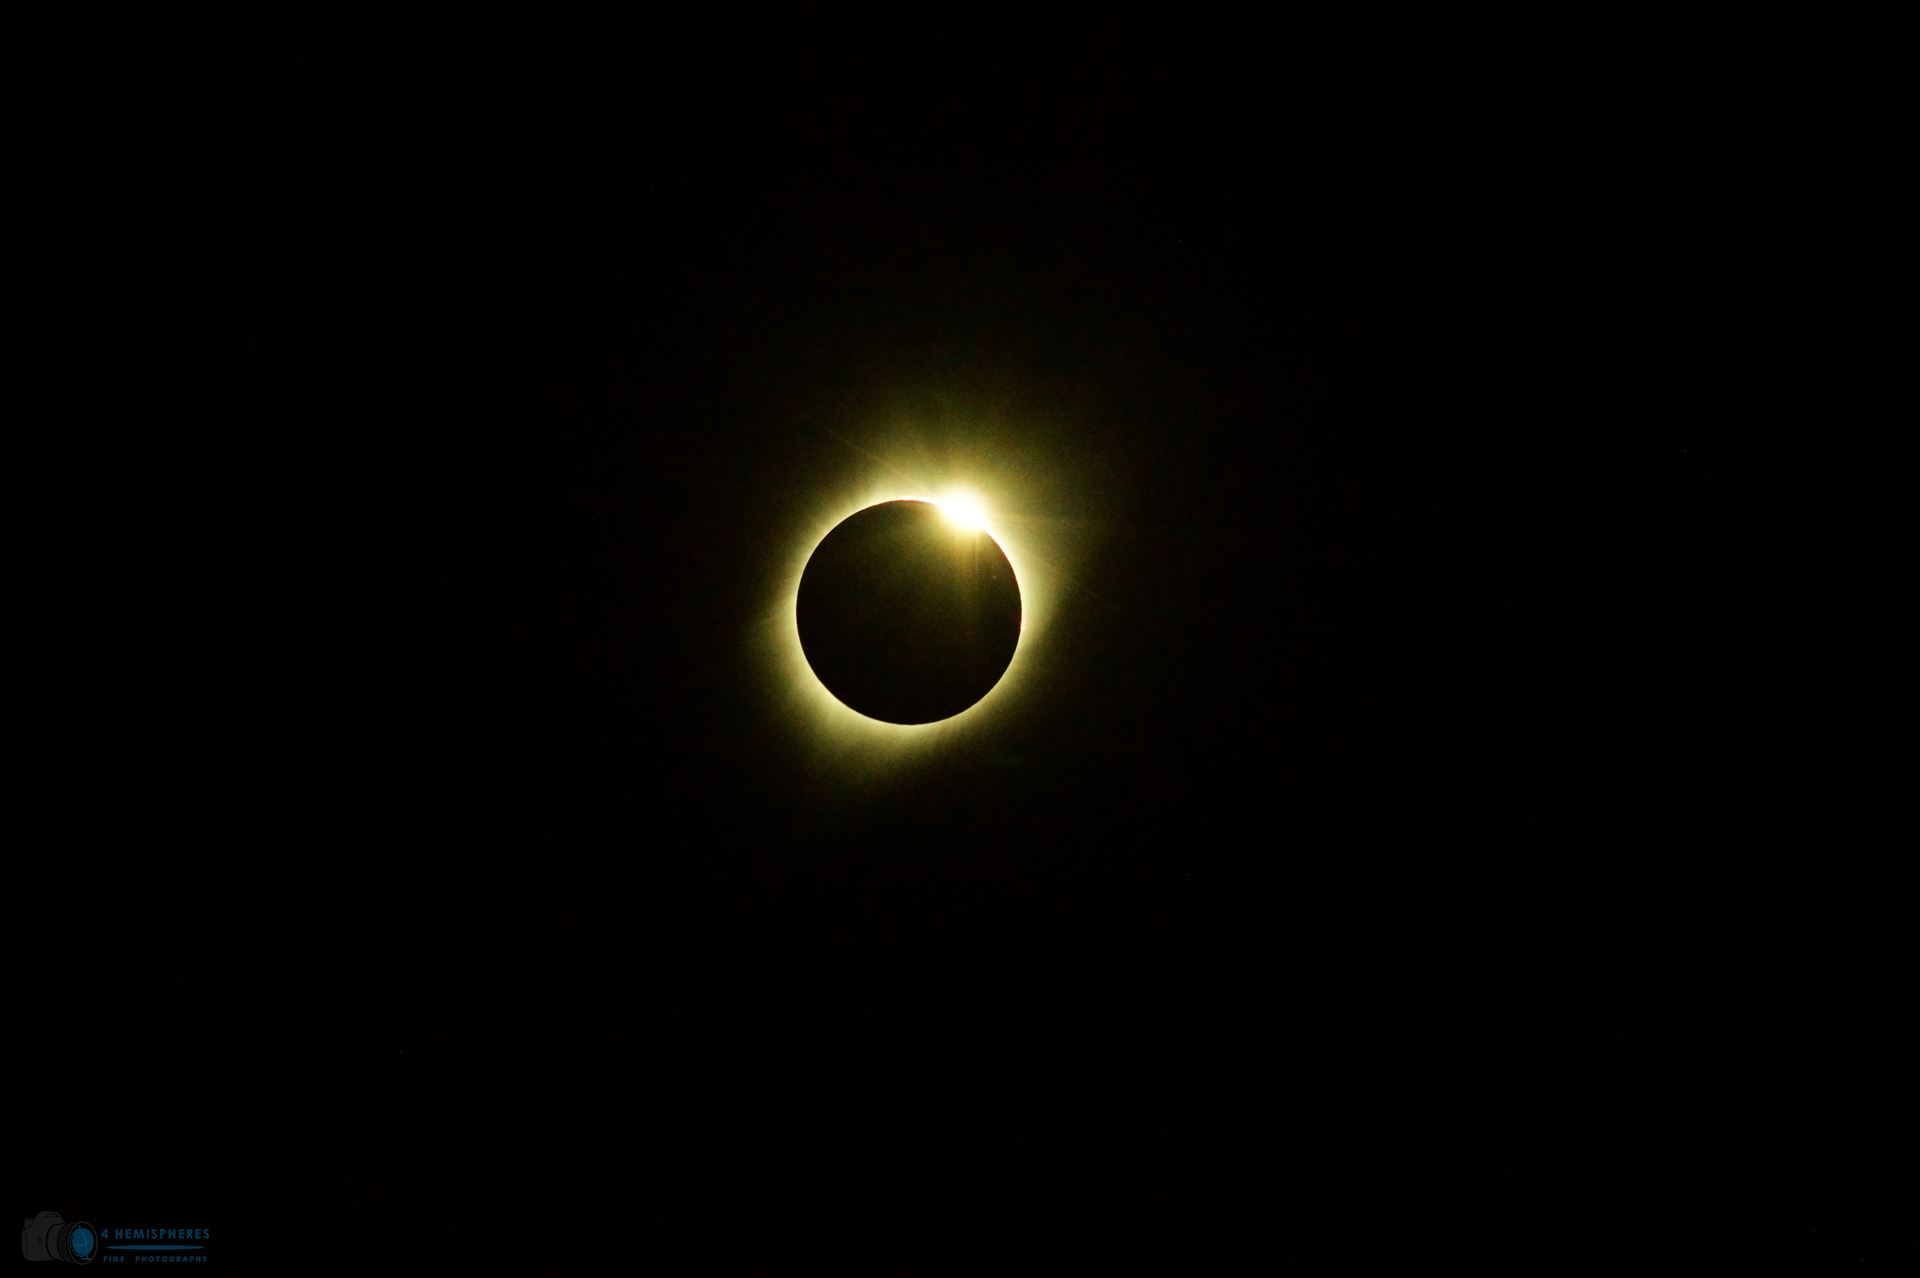 First Diamond - First glimpse of the diamond ring as the totality ends. by 4 Hemispheres Photography